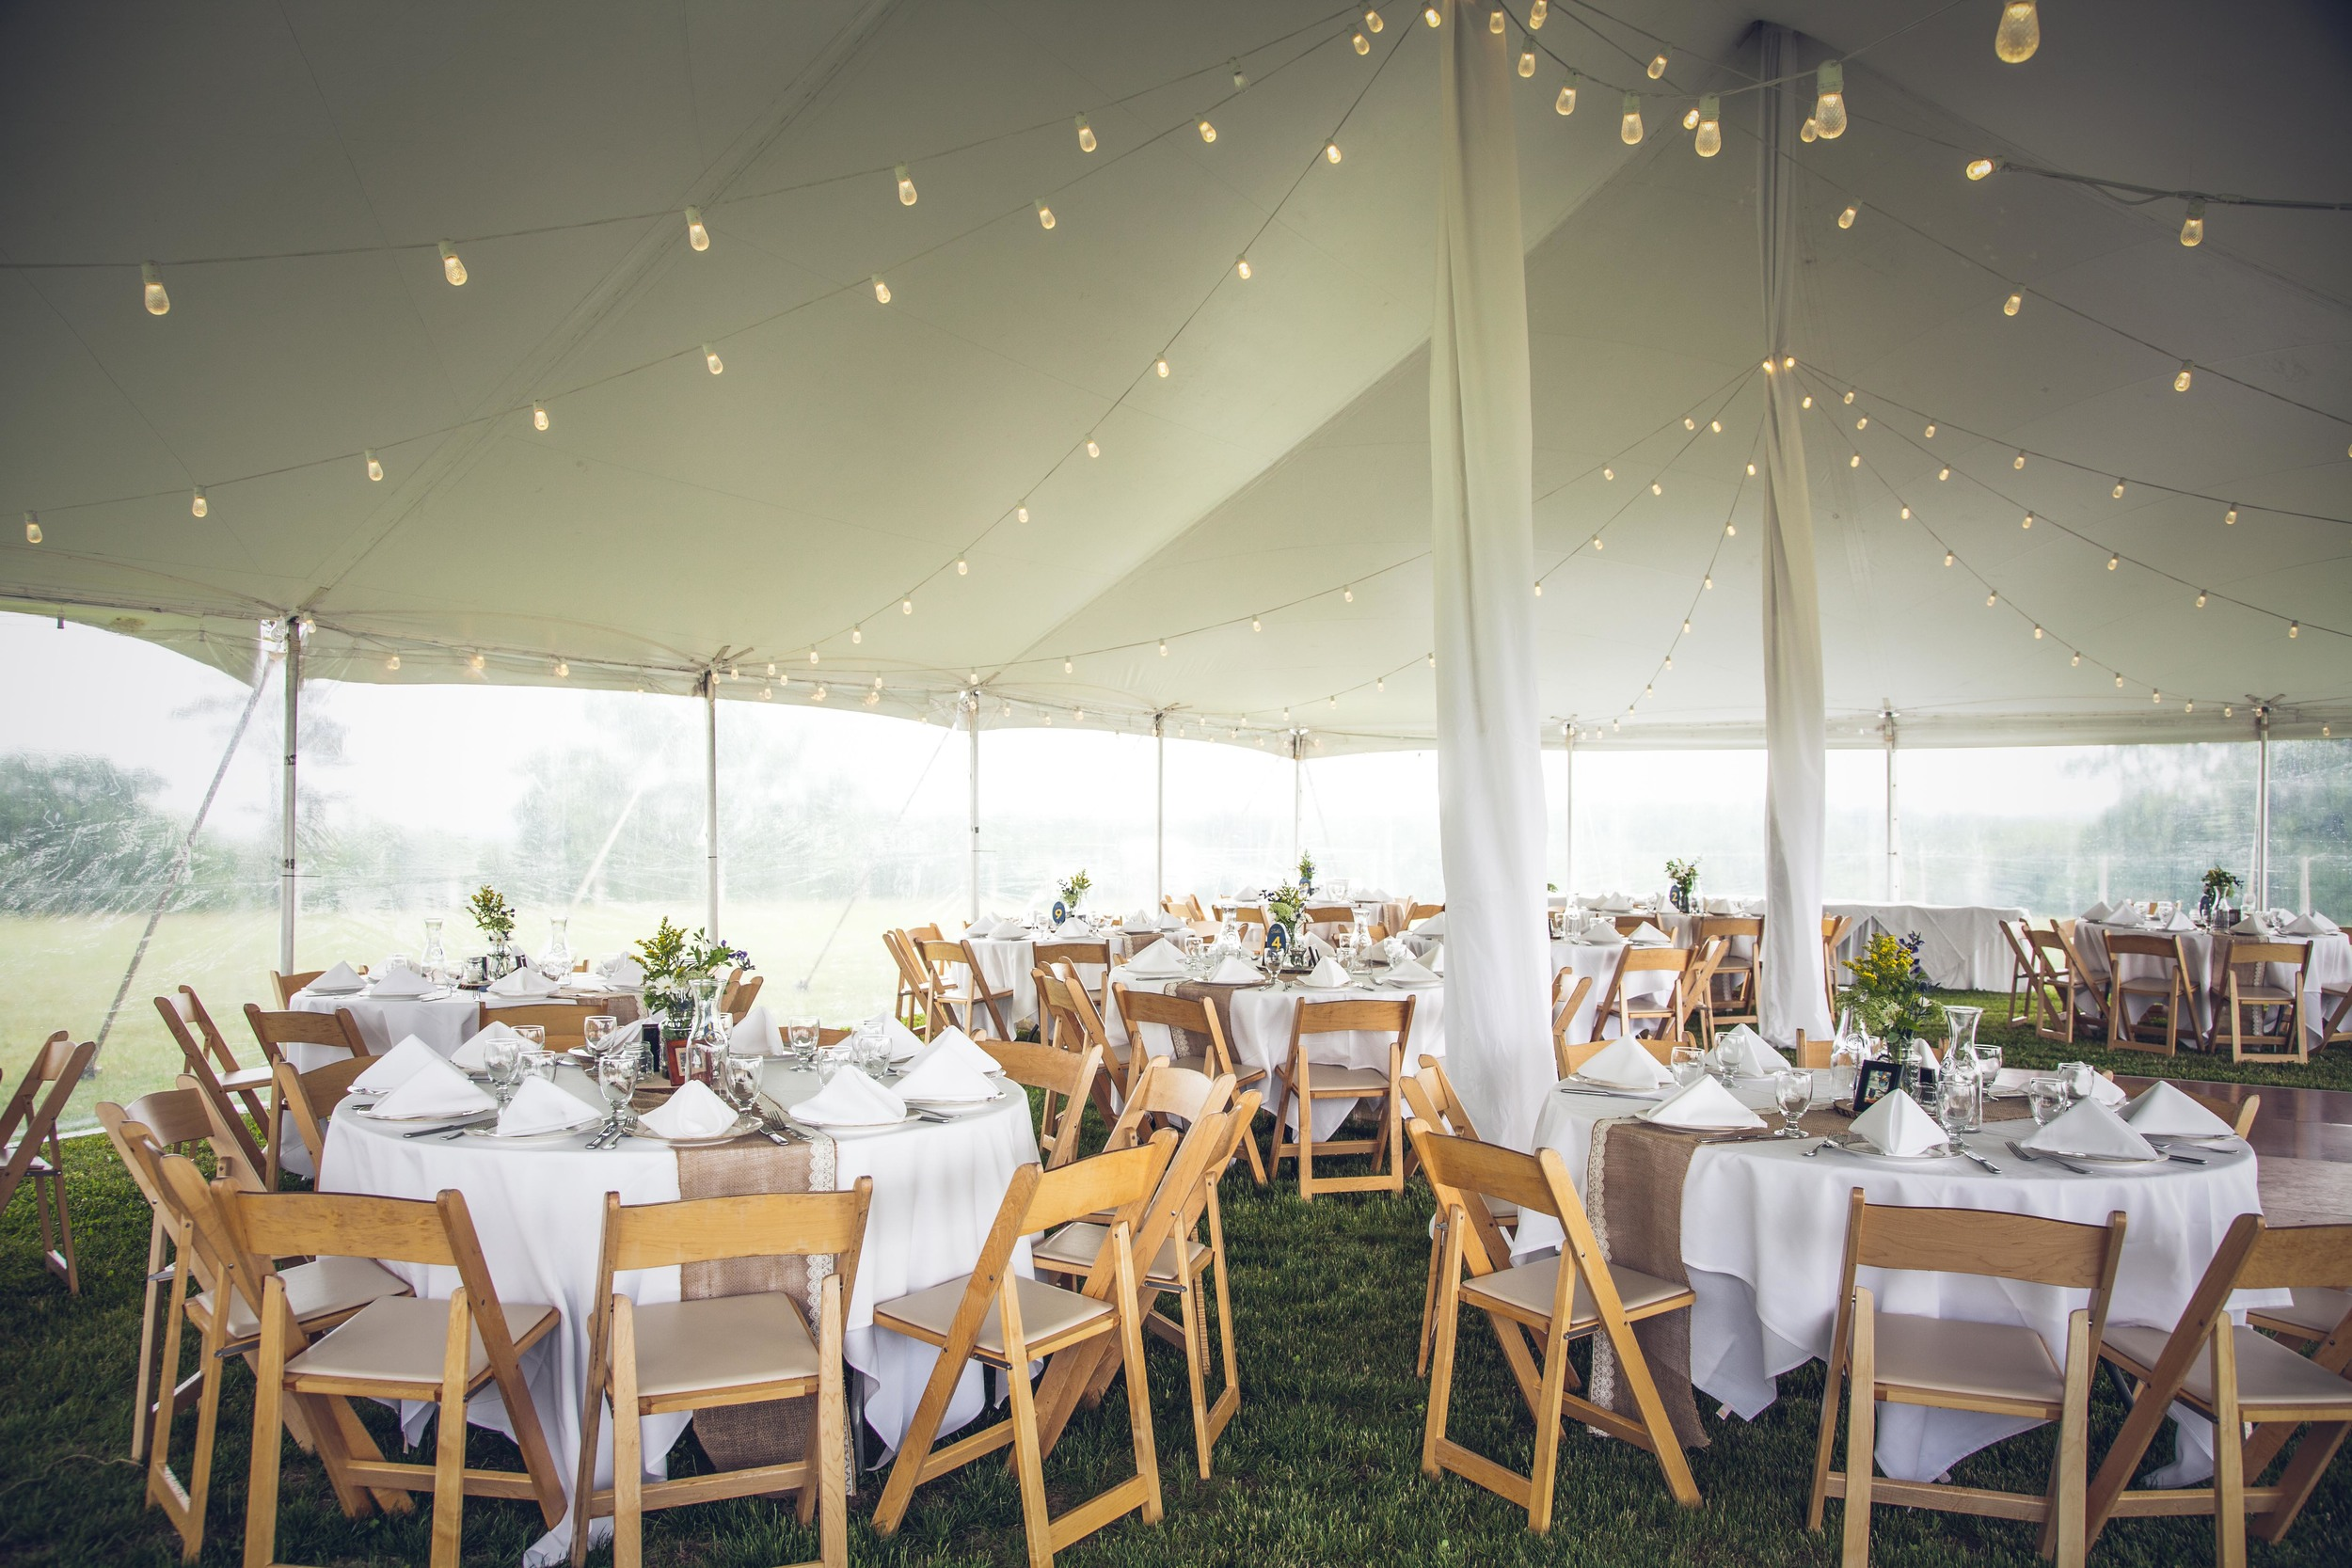 Tent with tea lights and tables set up